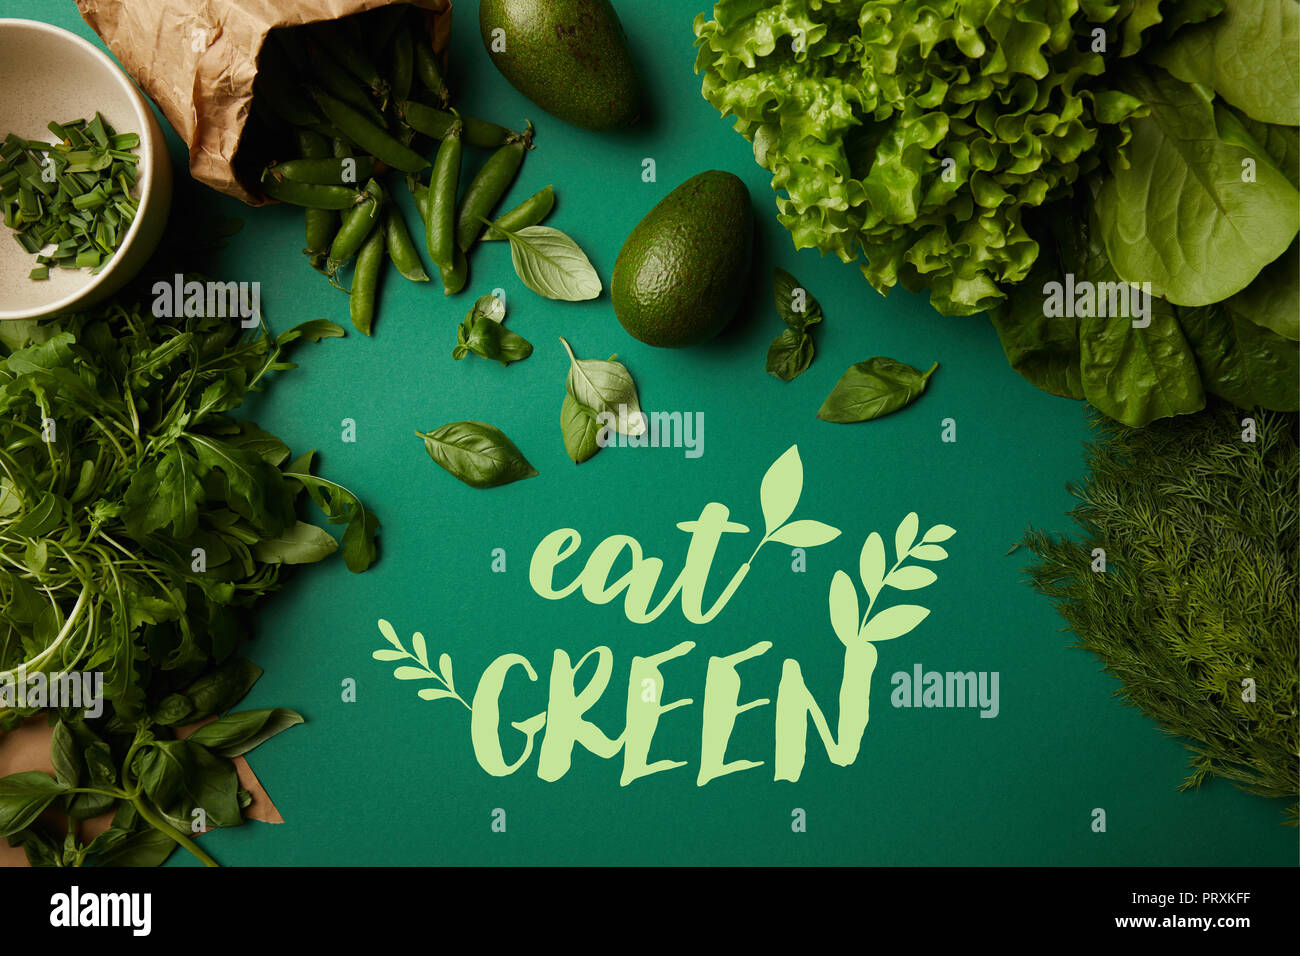 top view of different ripe vegetables on green surface with 'eat green' lettering - Stock Image